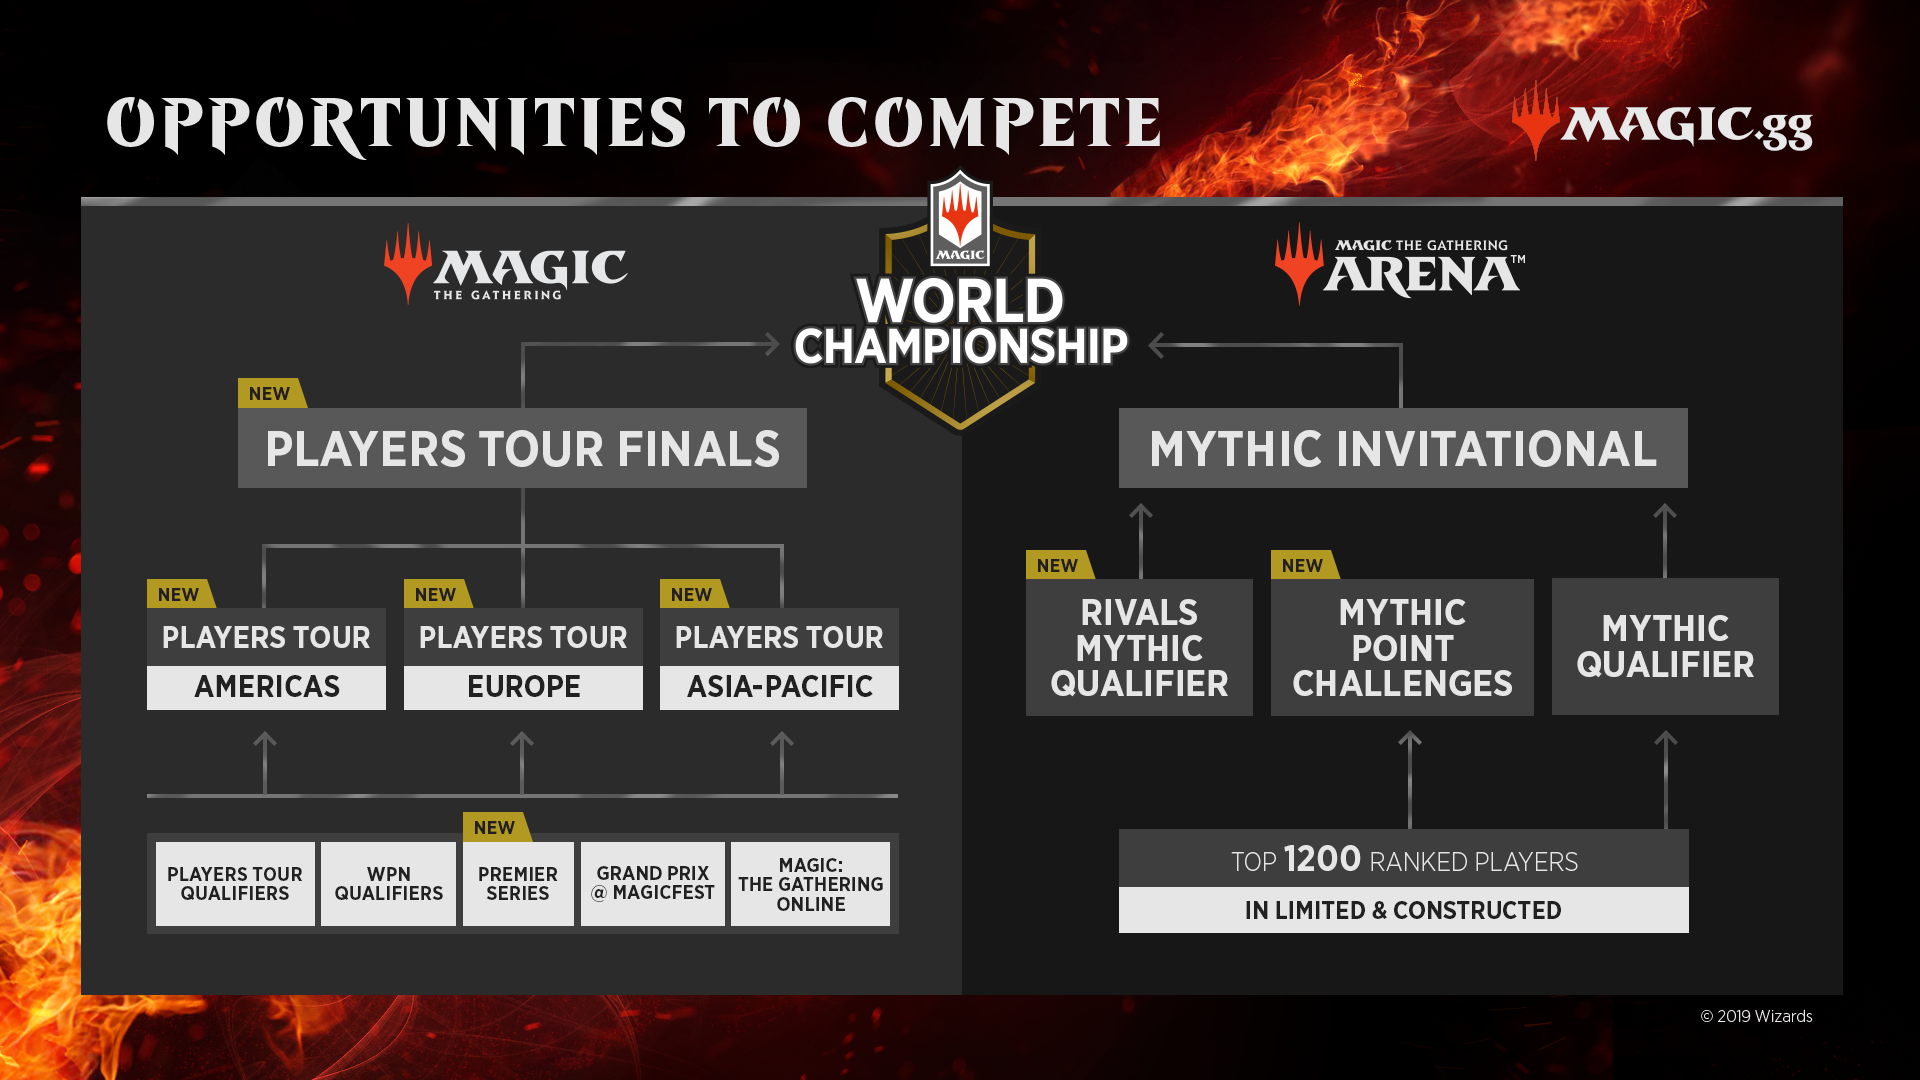 Opportunities presented for Magic pro players